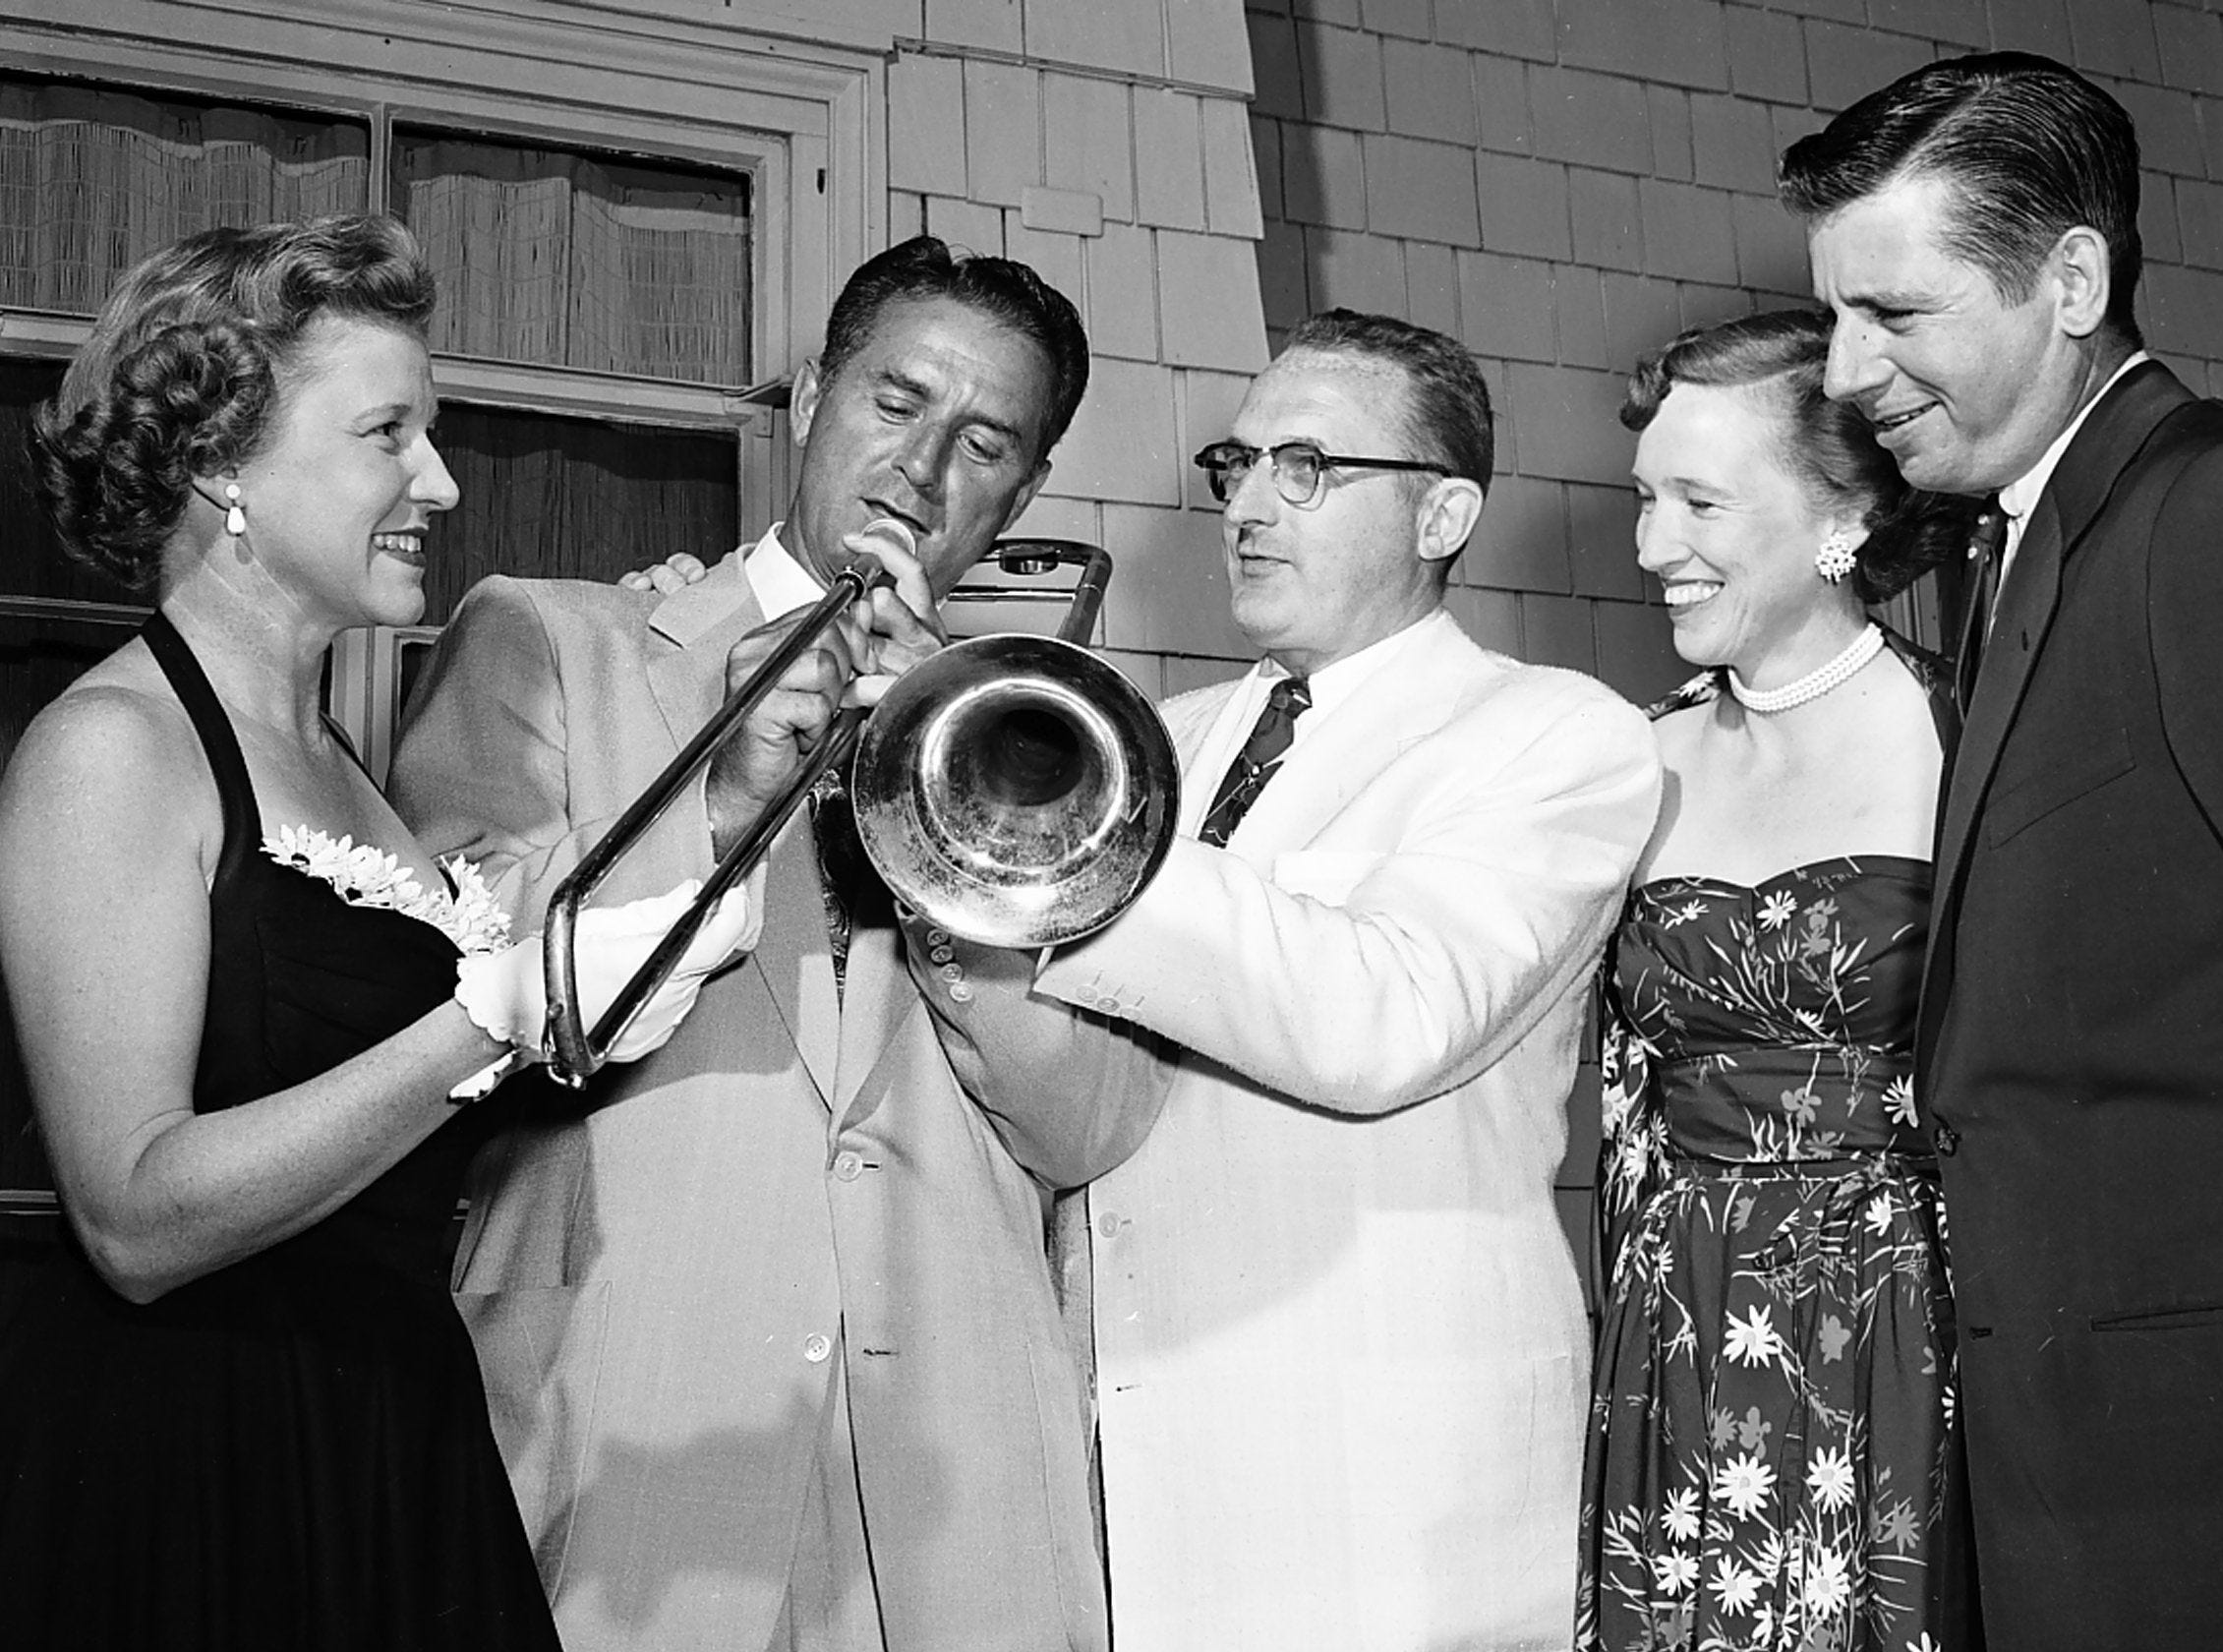 James W. Moore, second left, new entertainment chairman for the University Club, receives an impromptu trombone lesson from Tommy Dorsey, center, who was a special guest at the club?s al fresco buffet supper and dance on 13 June 1953. Looking on were Mrs. Moore, left, and Mr. and Mrs. George W. Humphreys.